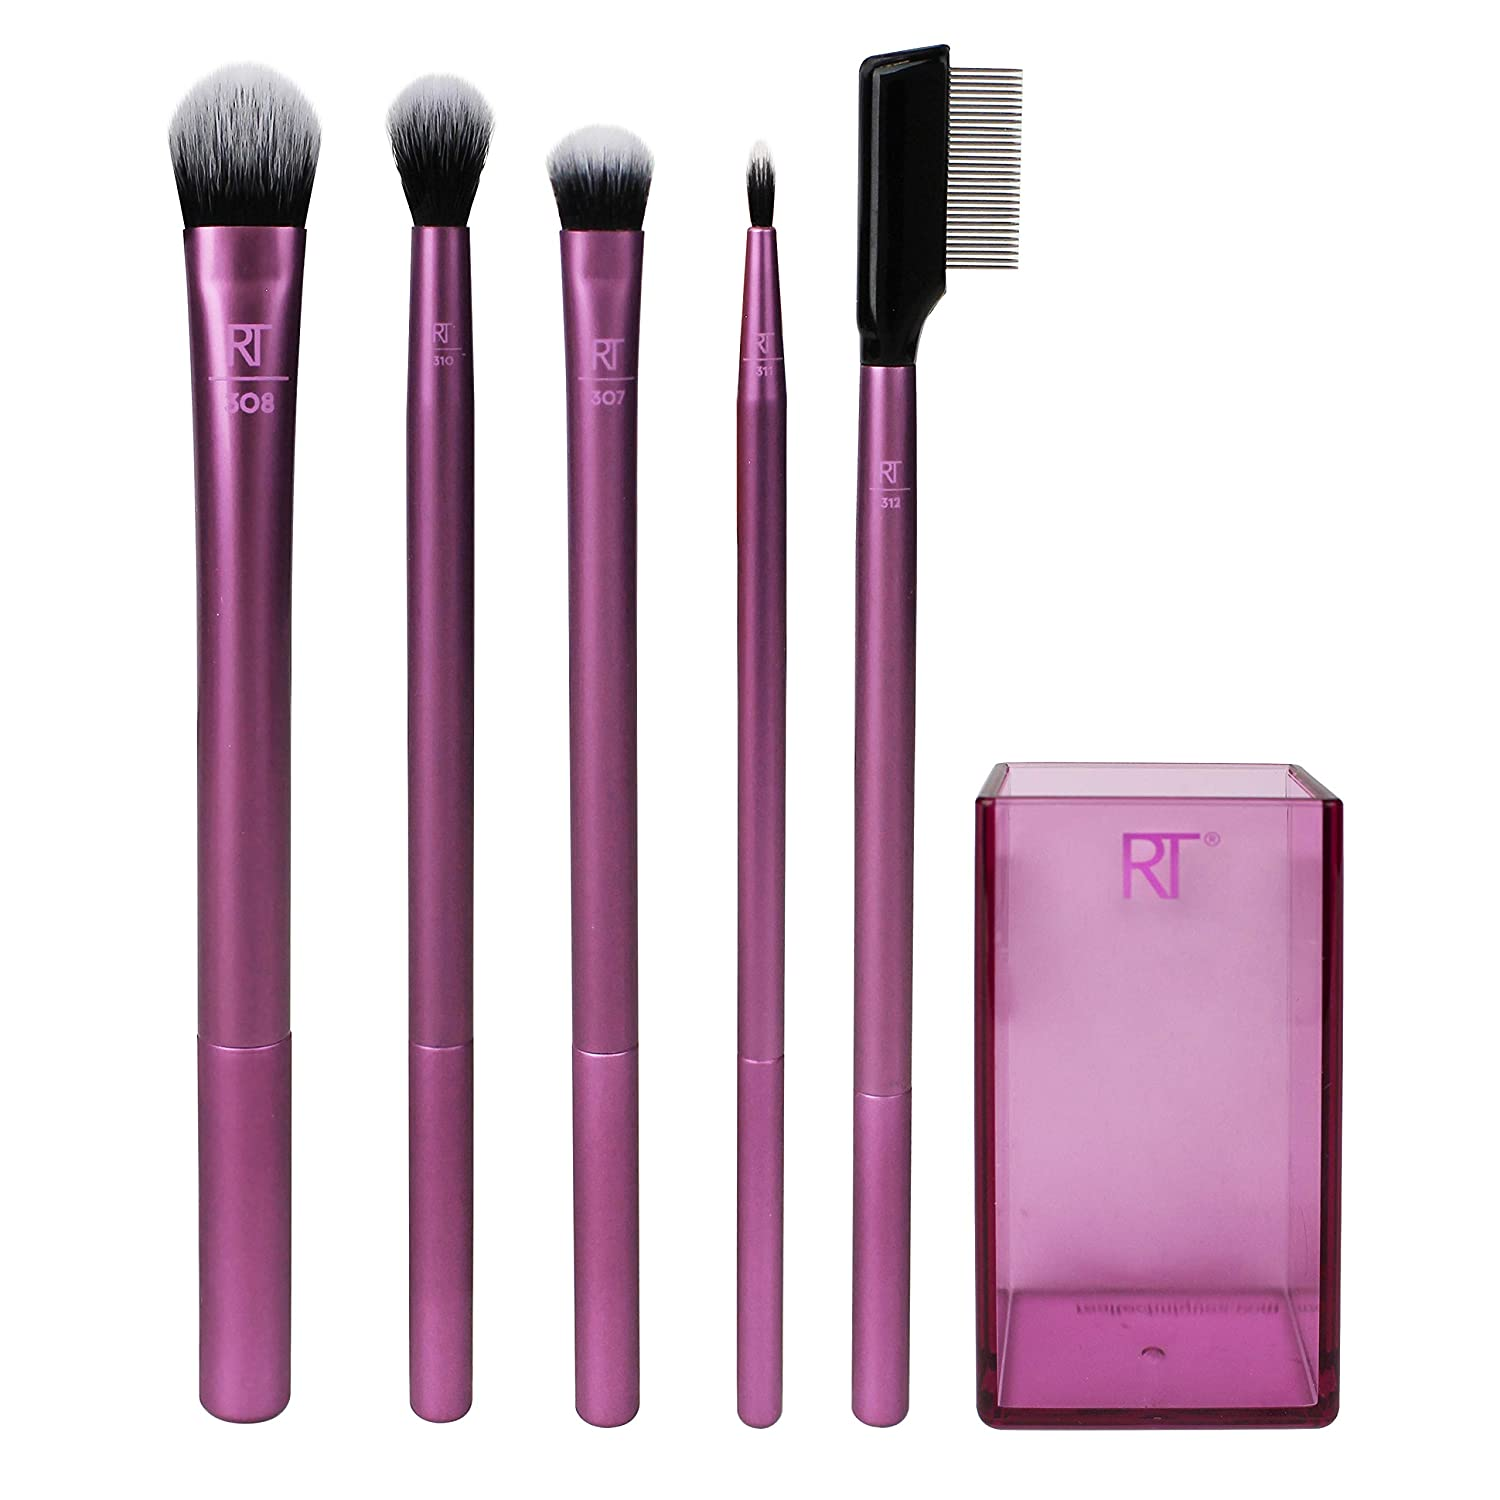 Real Techniques Enhanced Eye Set Eyeshadow & Eyeliner Makeup Brush Kit for Every Look